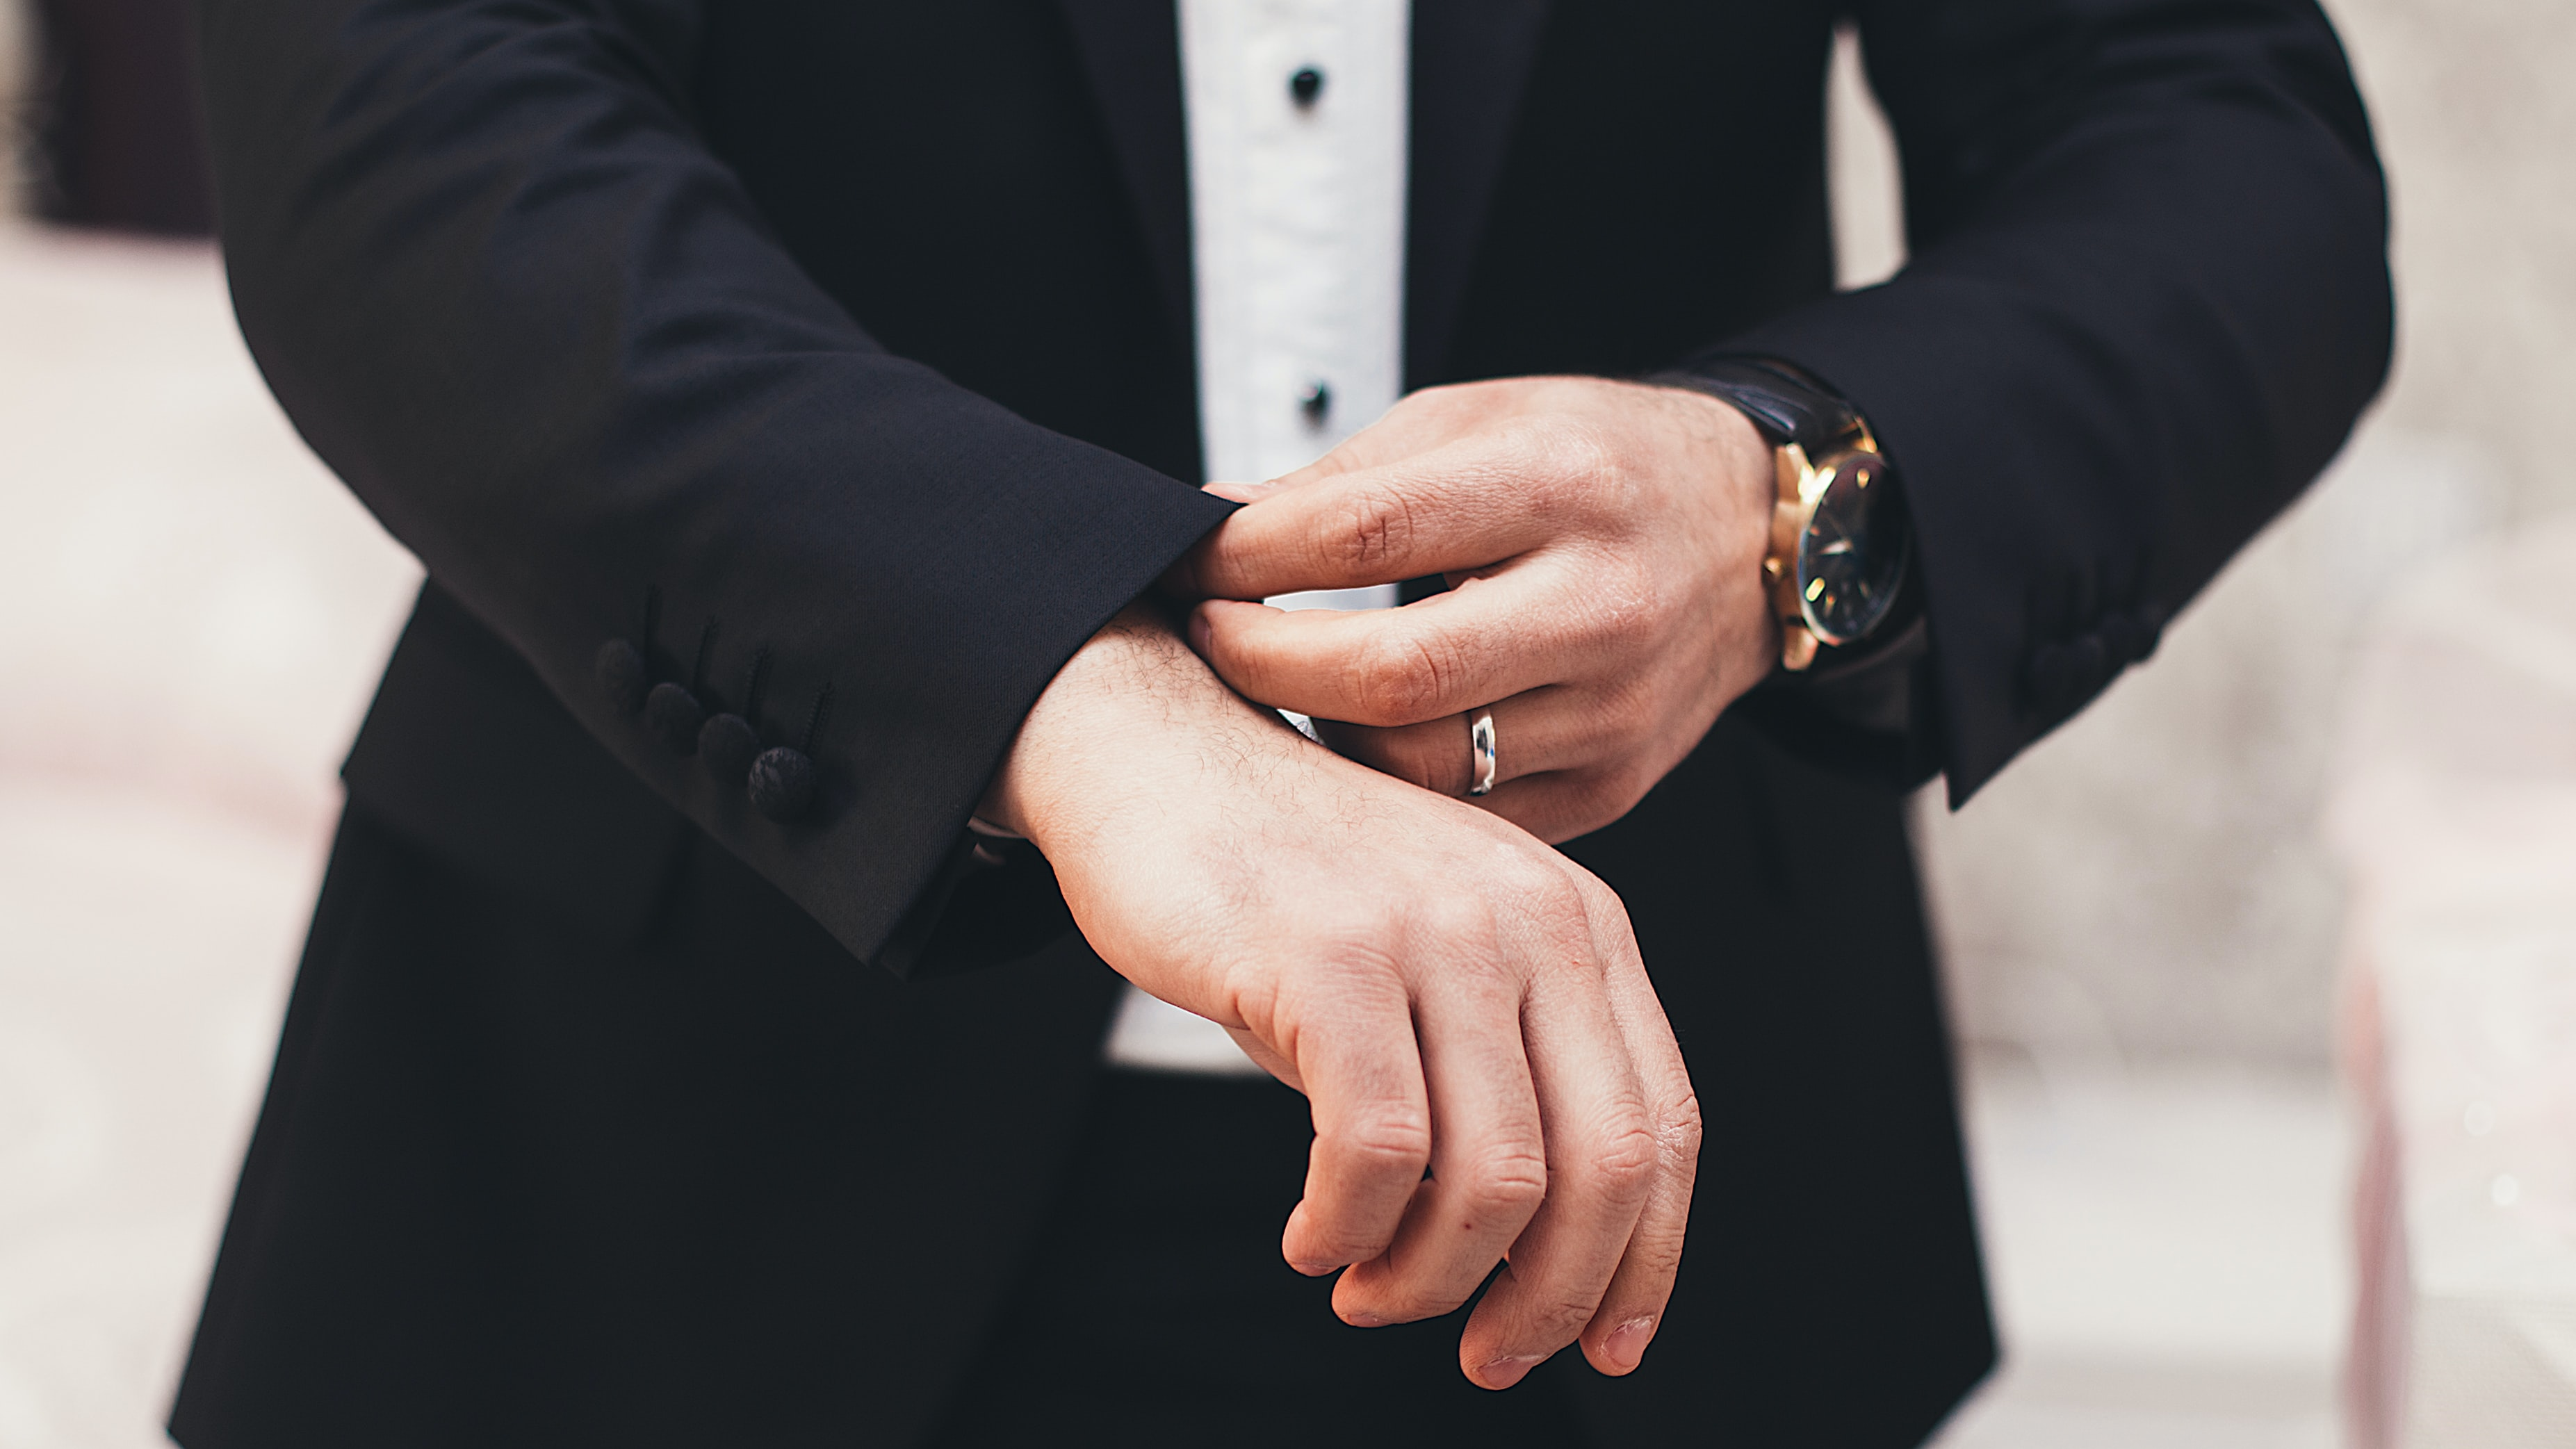 A man's hands adjusting the cuffs of his black suit